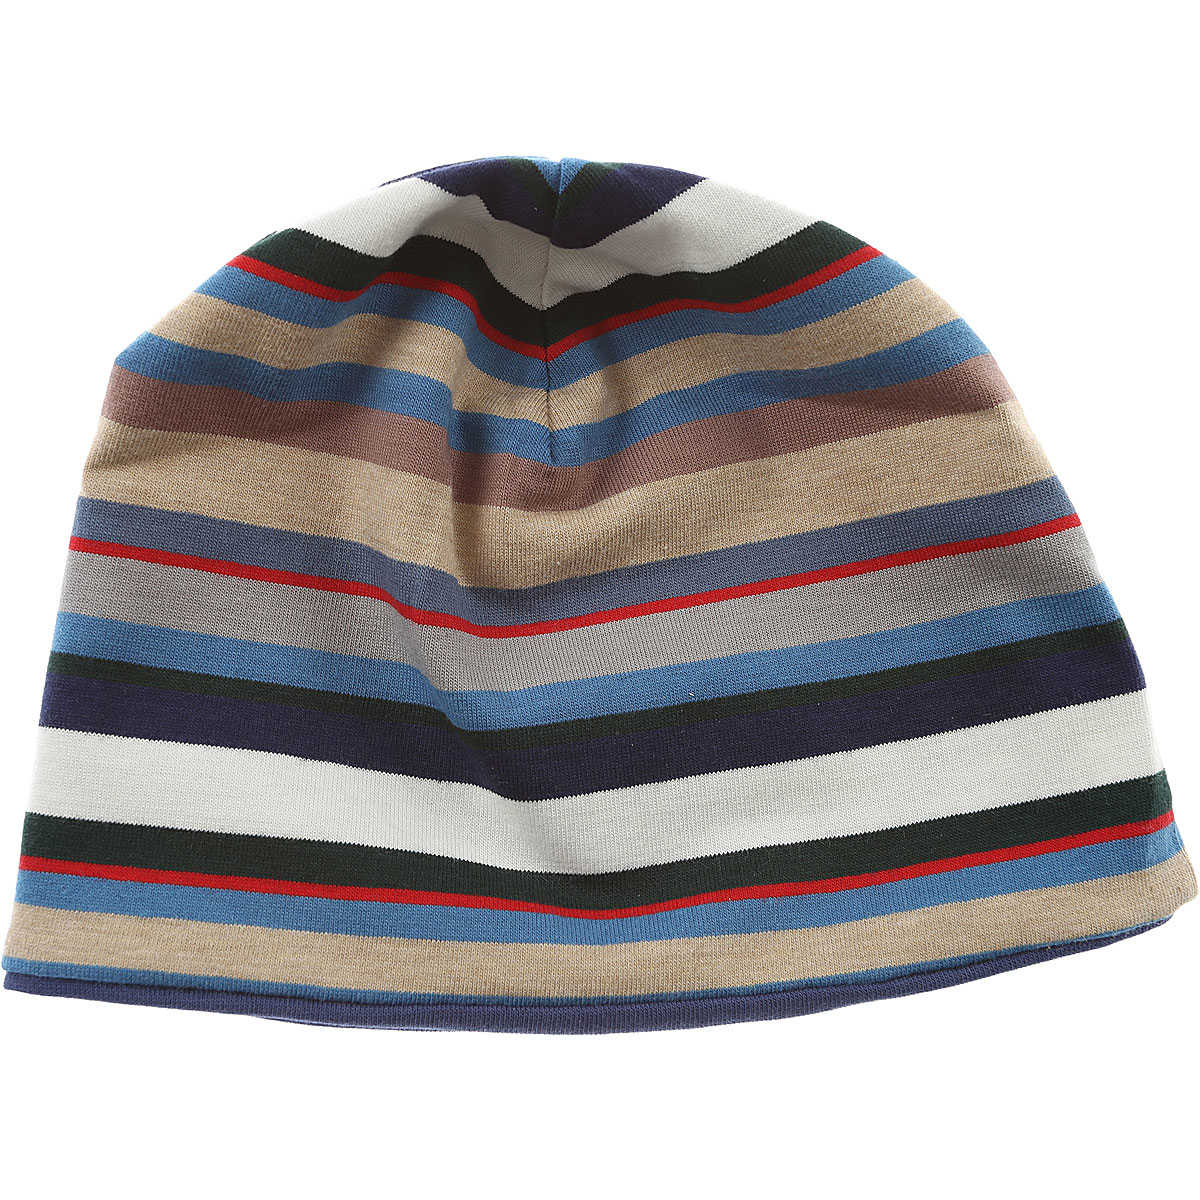 Gallo Baby Hats for Boys On Sale in Outlet Multicolor DK - GOOFASH - Mens HATS